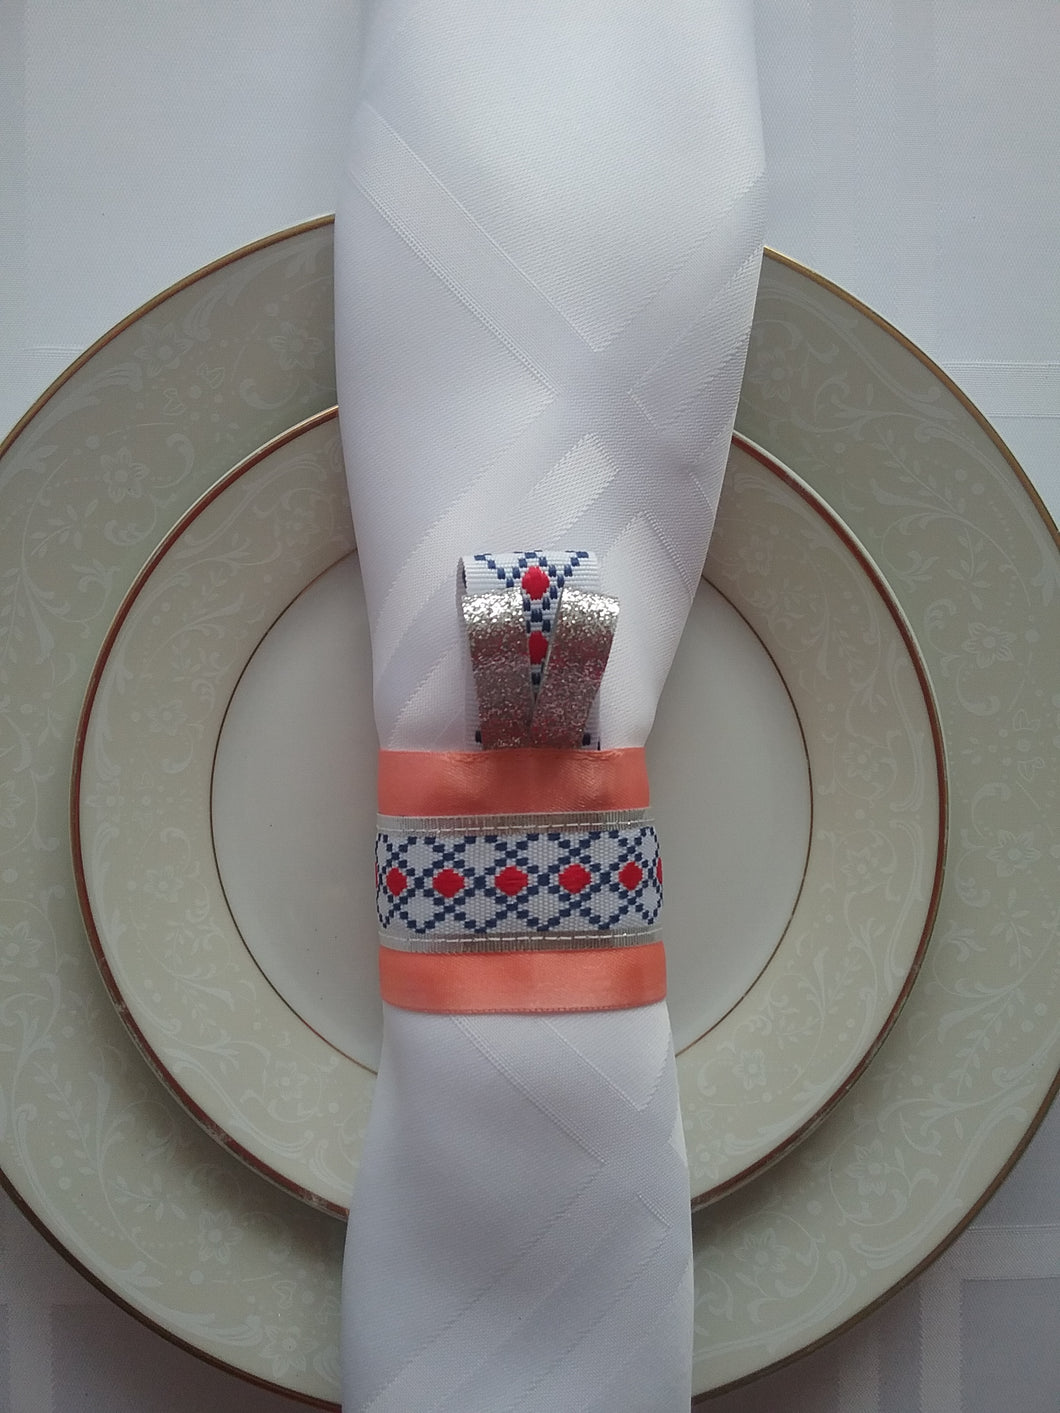 Rebecca Napkin Ring Woven Traditional Style Artwork Forever Dinner Dress Artful Effect for Table Handmade Art by Maria Iliescu - HANDMADE ART BY MARIA ILIESCU